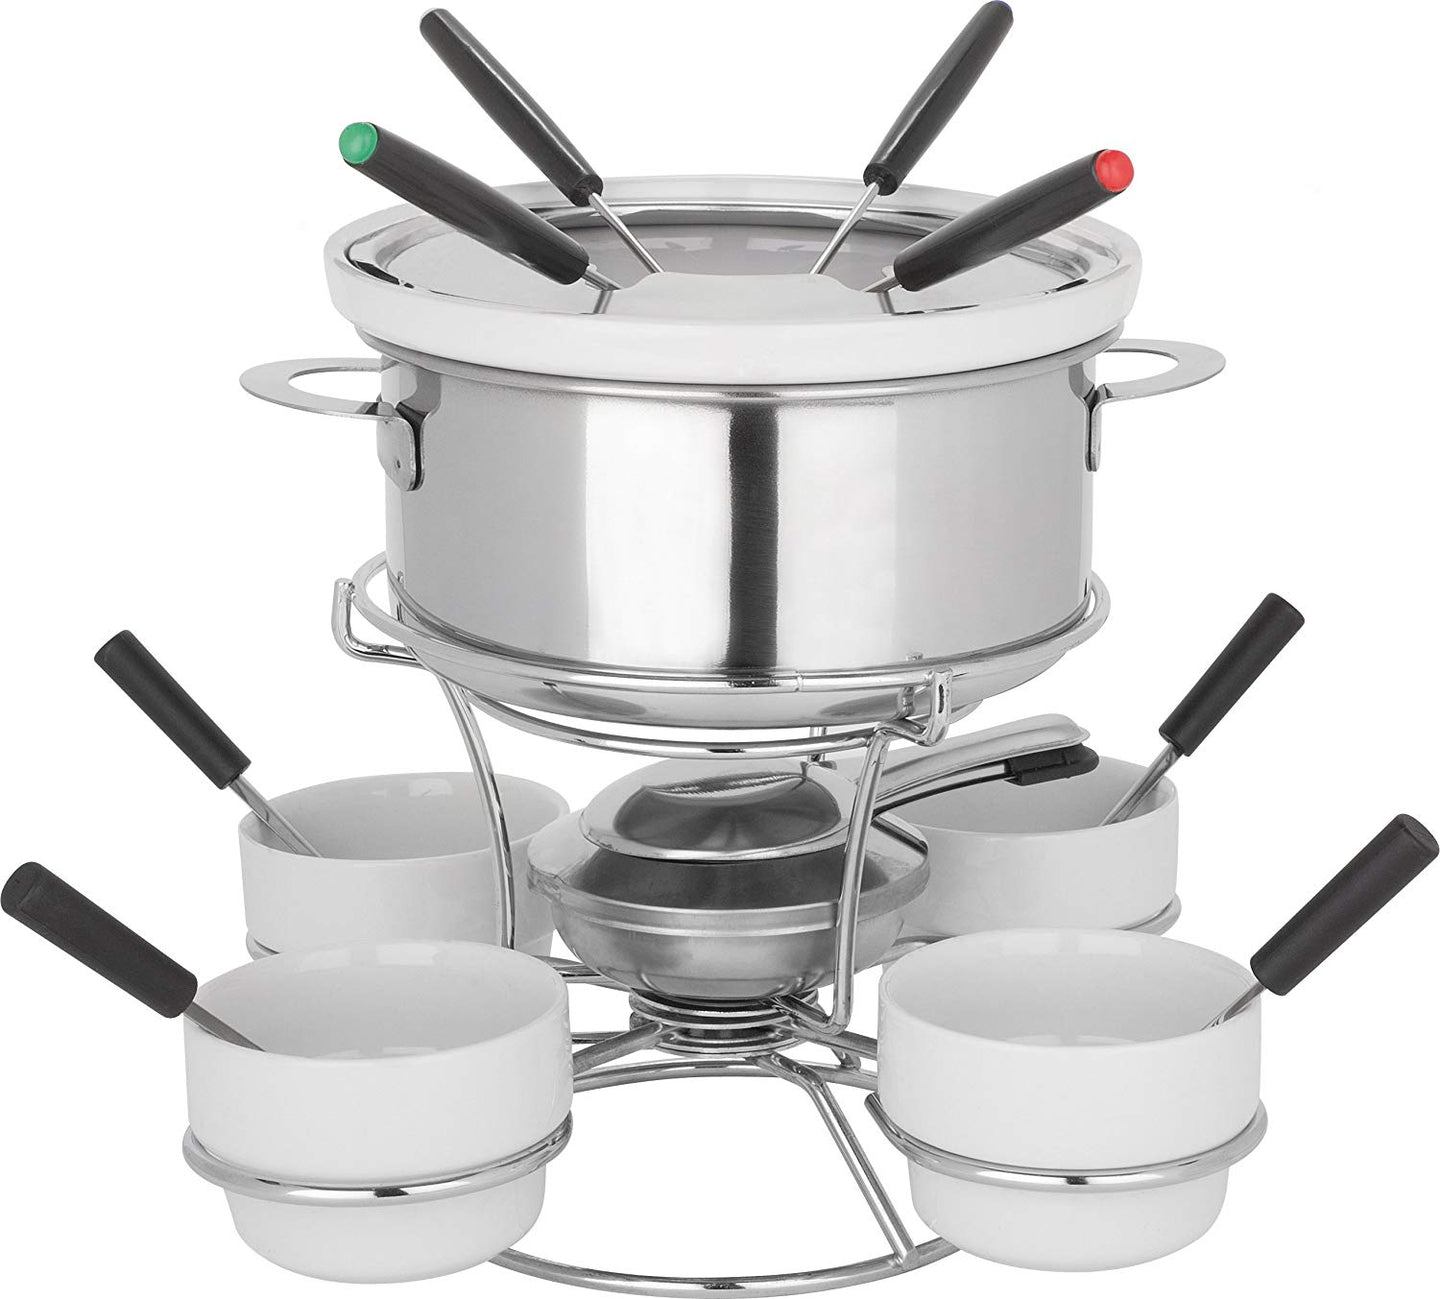 FENTY 3-IN-1 FONDUE SET